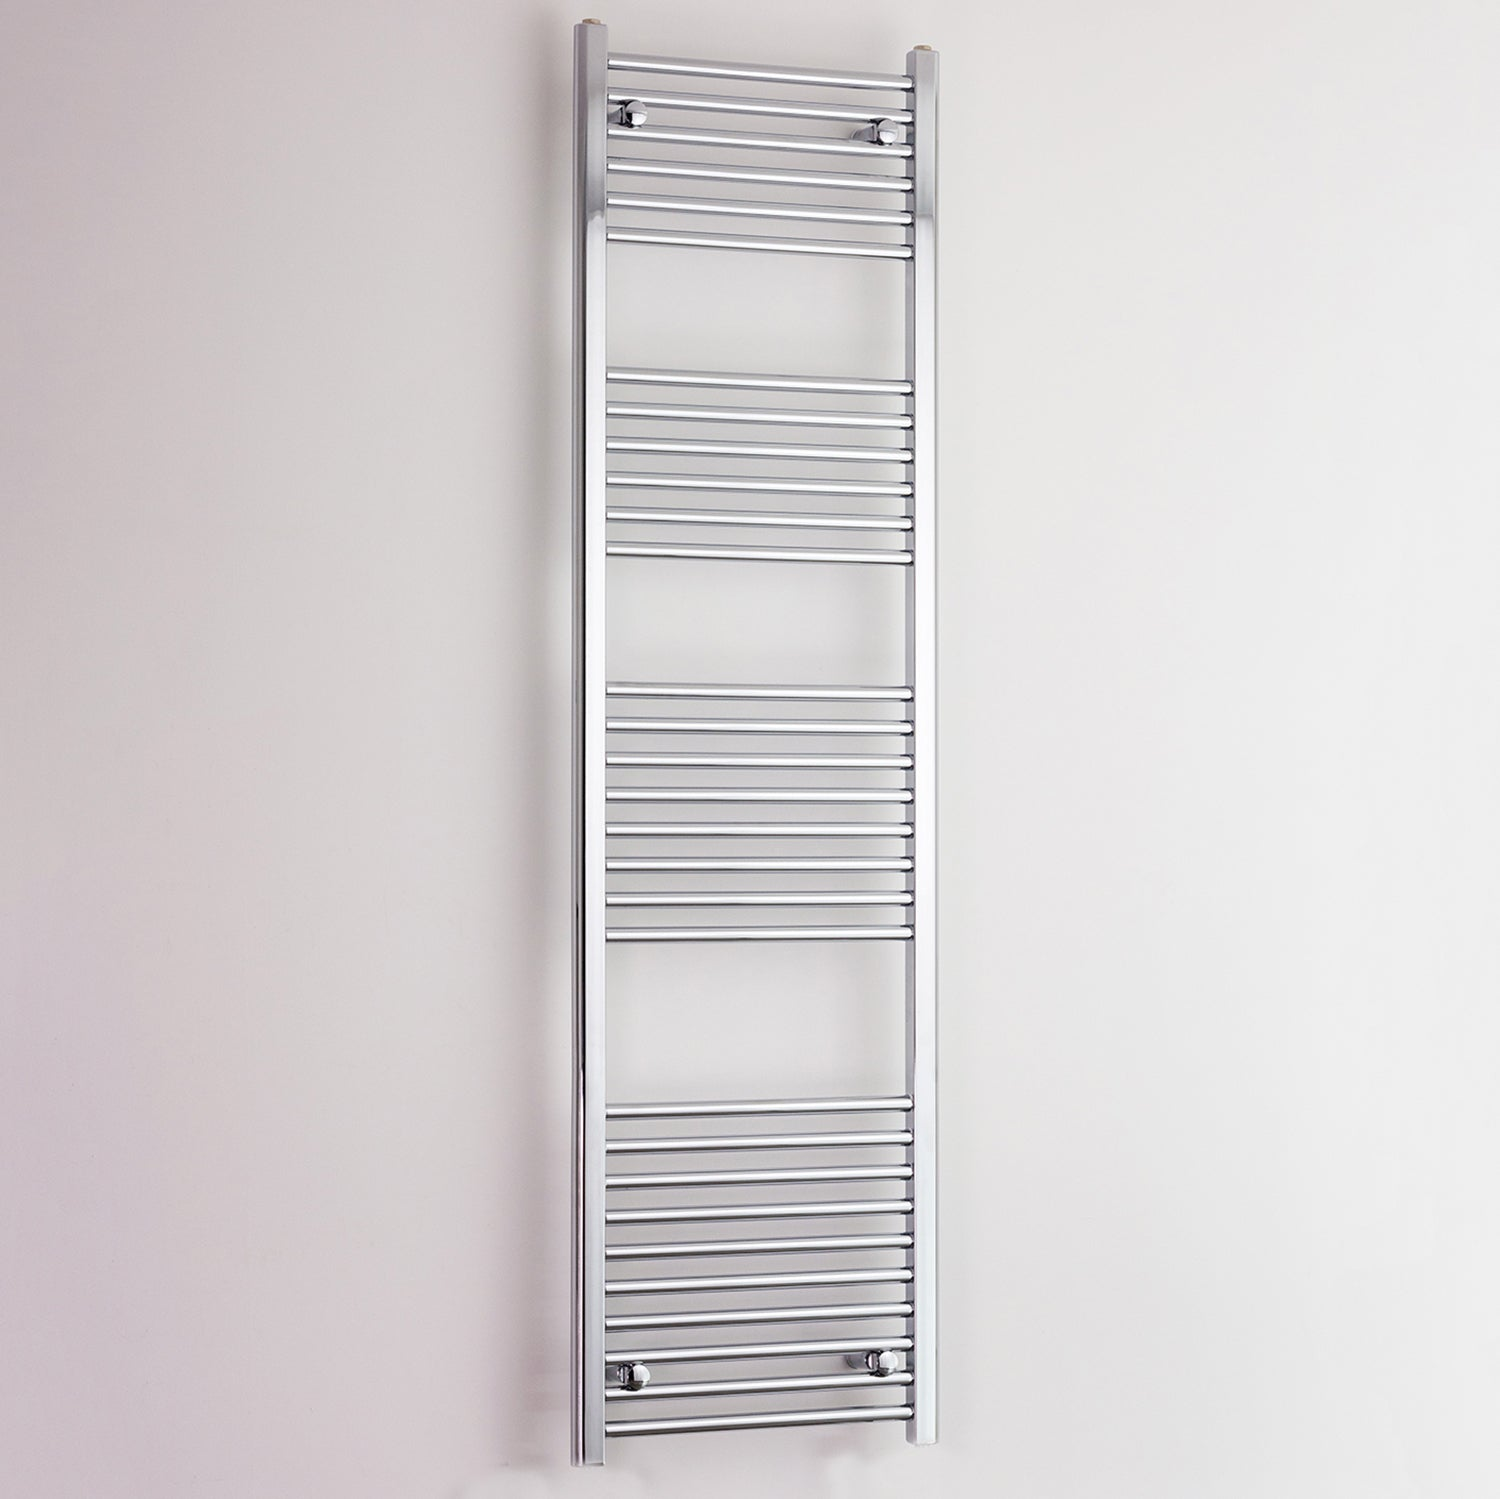 400mm Wide 1800mm High Flat Chrome Heated Towel Rail Radiator HTR,Towel Rail Only